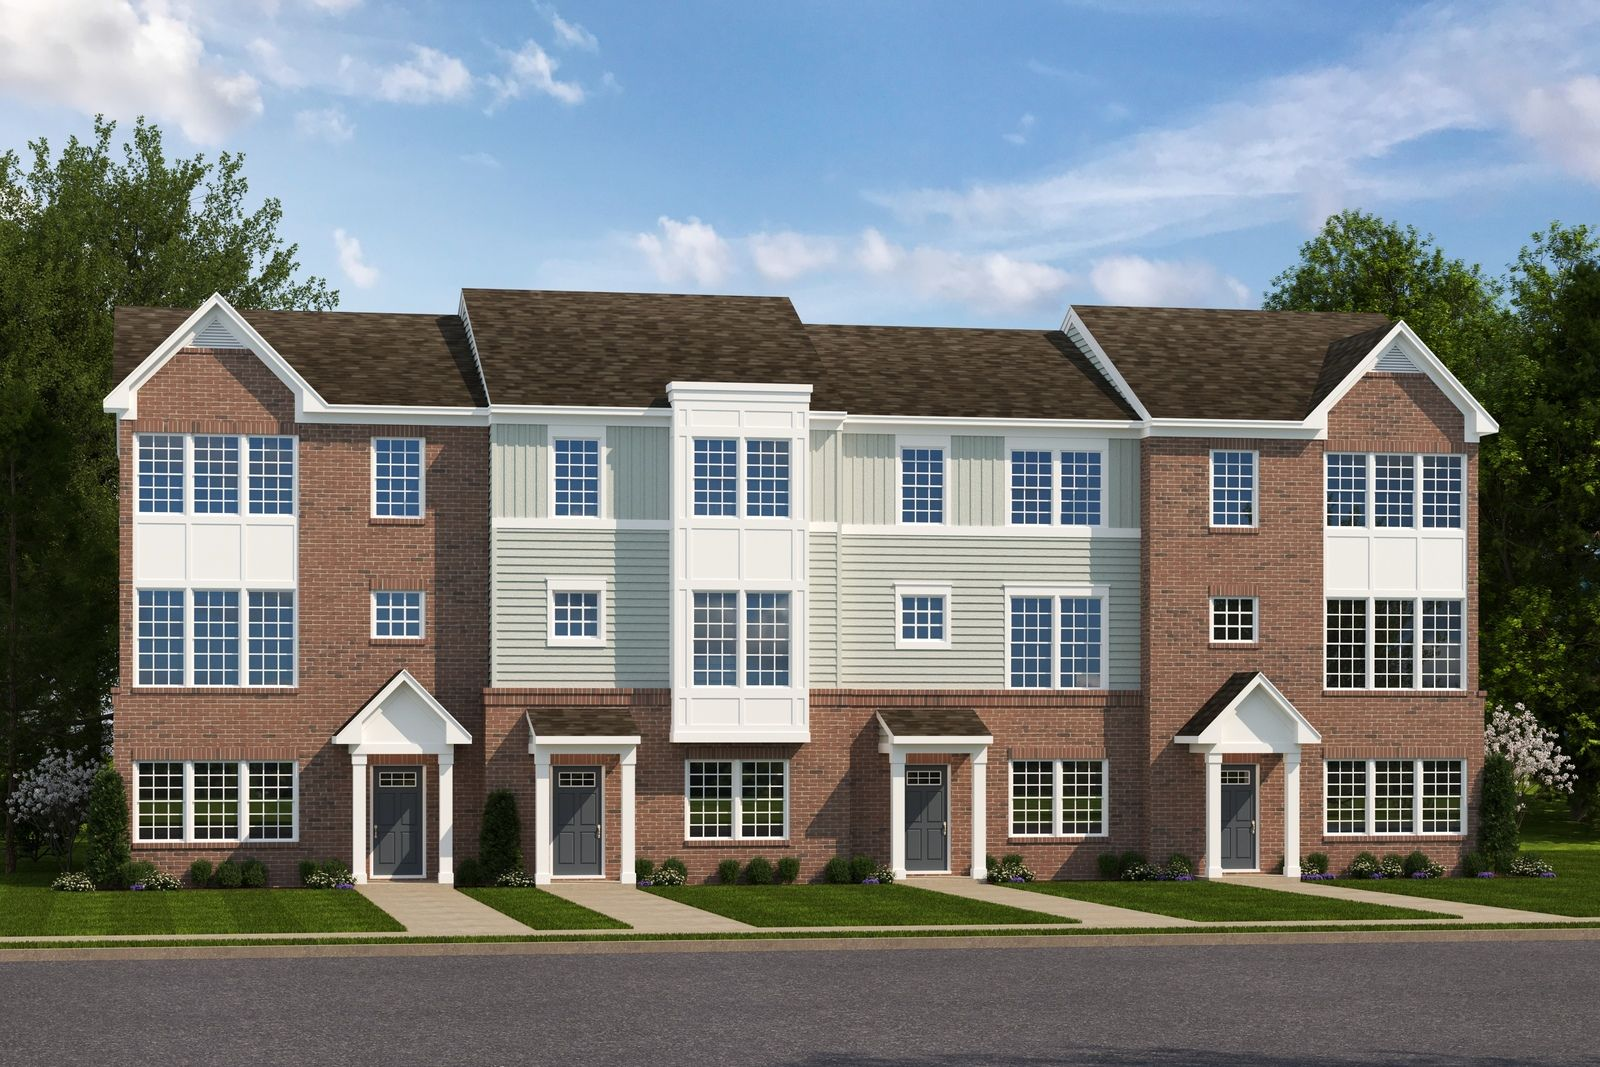 LIMITED OPPORTUNITY TO OWN NEW IN LAKE ZURICH:The best location for new, urban townhomes in Downtown Lake Zurich. Enjoy lake living w/ close proximity to Old Rand Rd & US-12. Located in Lake Zurich Schools. Mid $300s.Join the VIP List today!